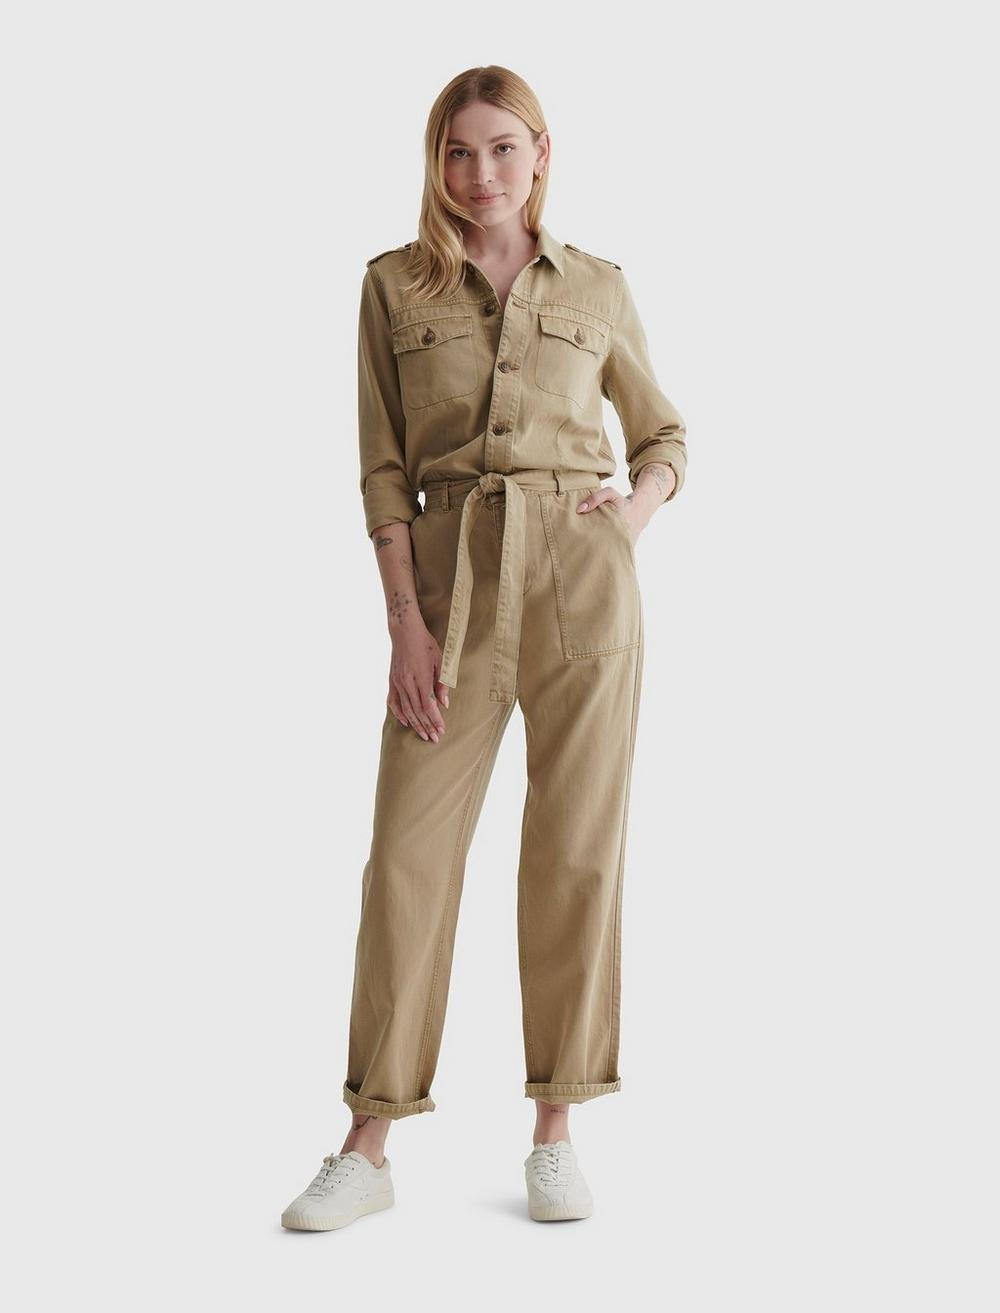 OUT OF TOWN JUMPSUIT, image 1